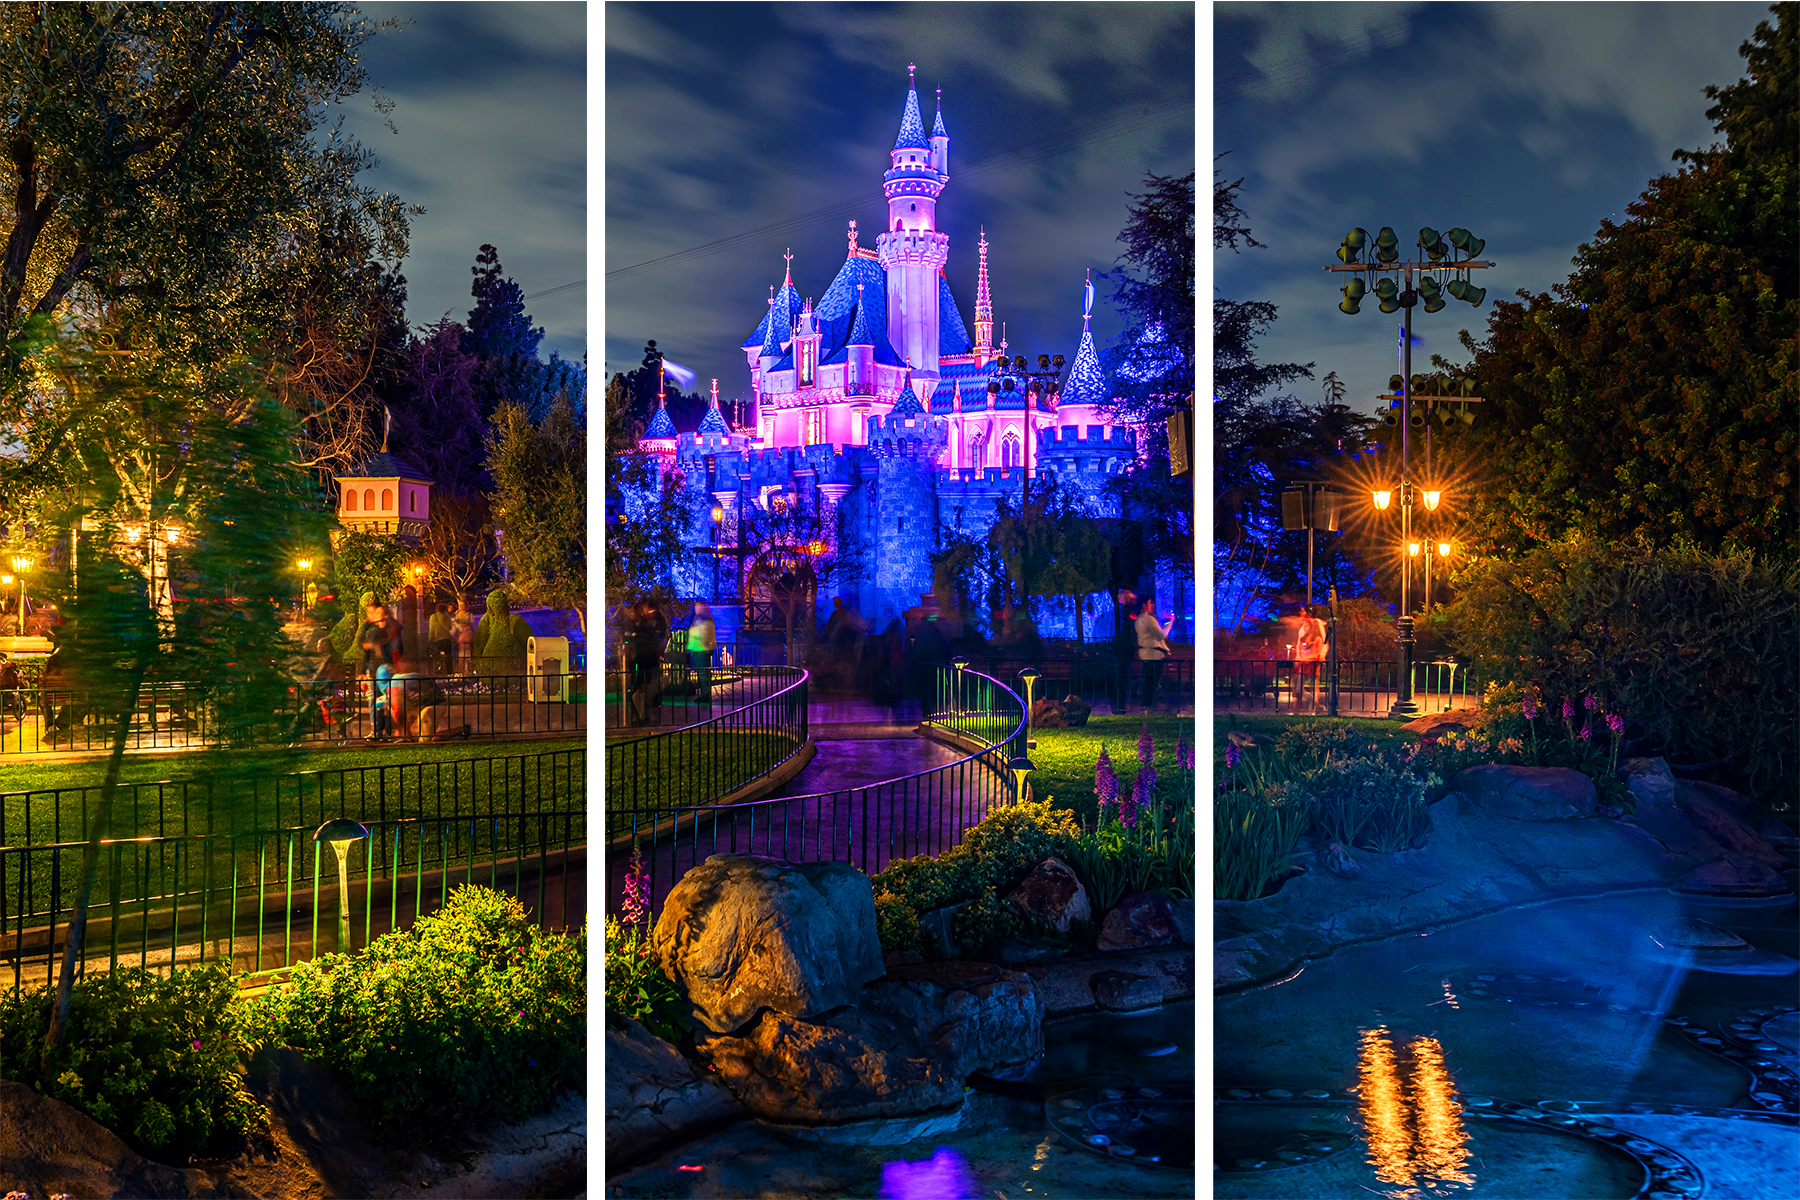 The path to sleeping beauty castle xcrgvb